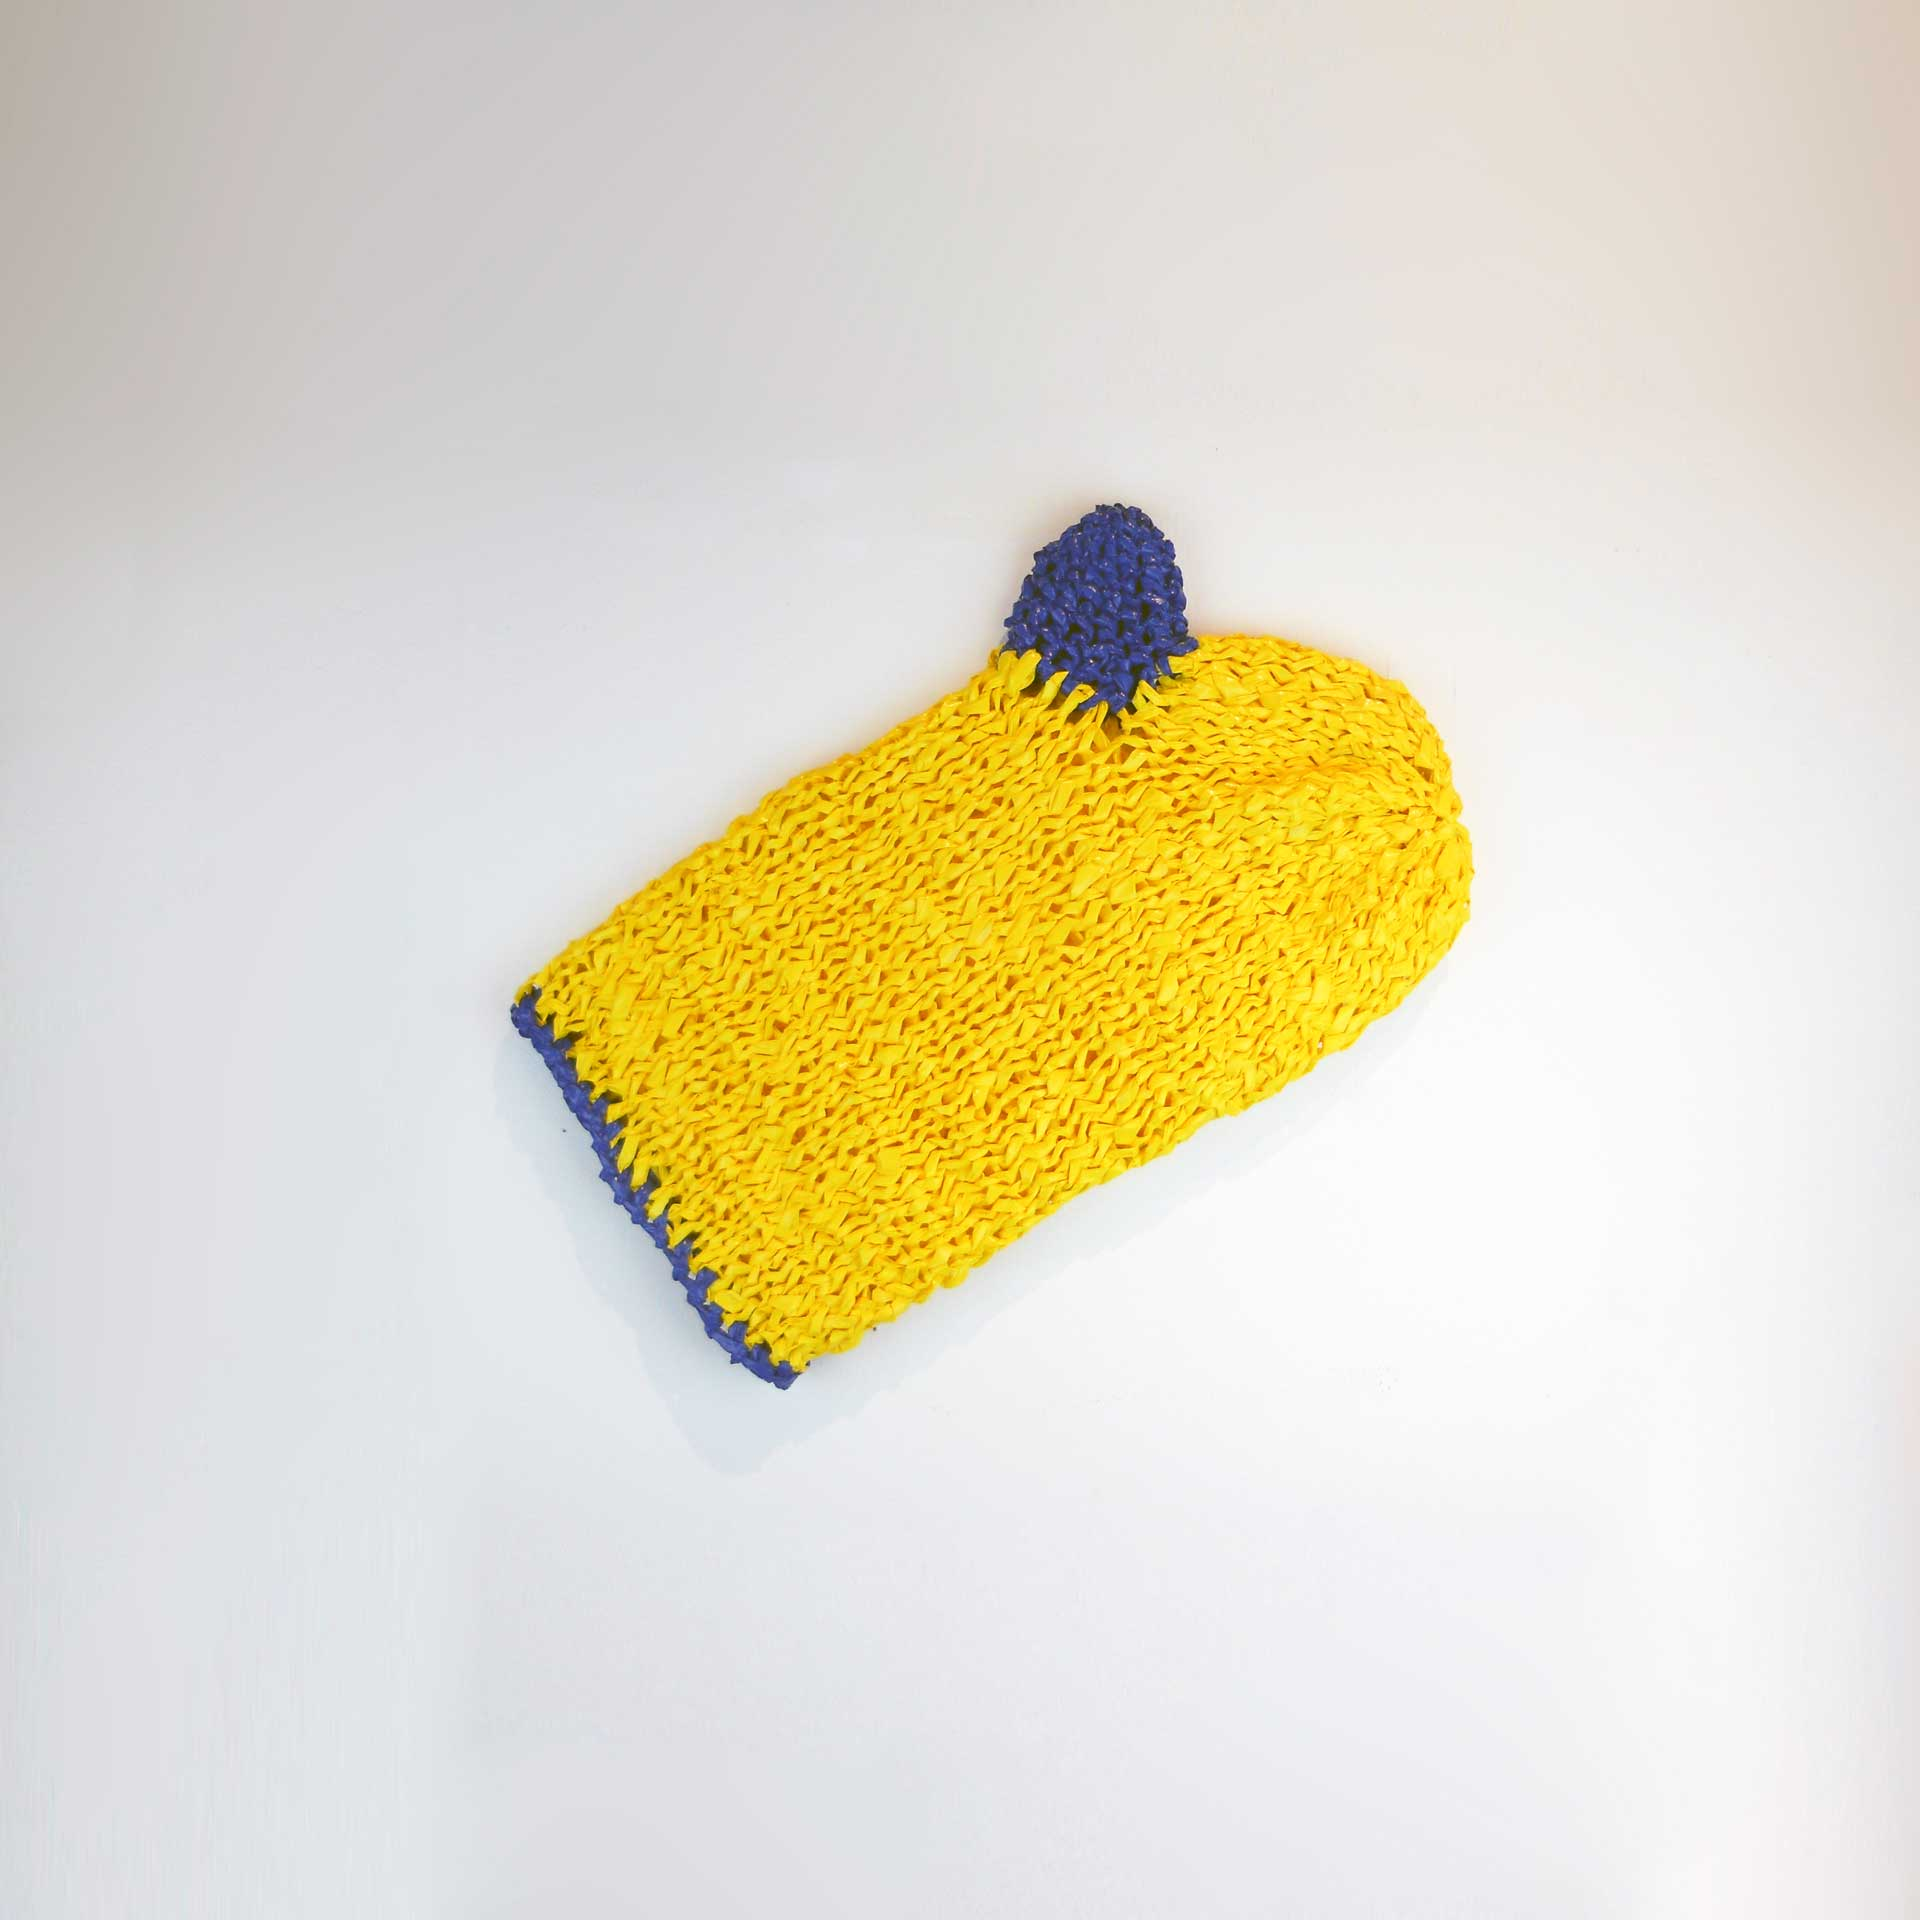 Canary Yellow Mitt by Darlyn Susan Yee